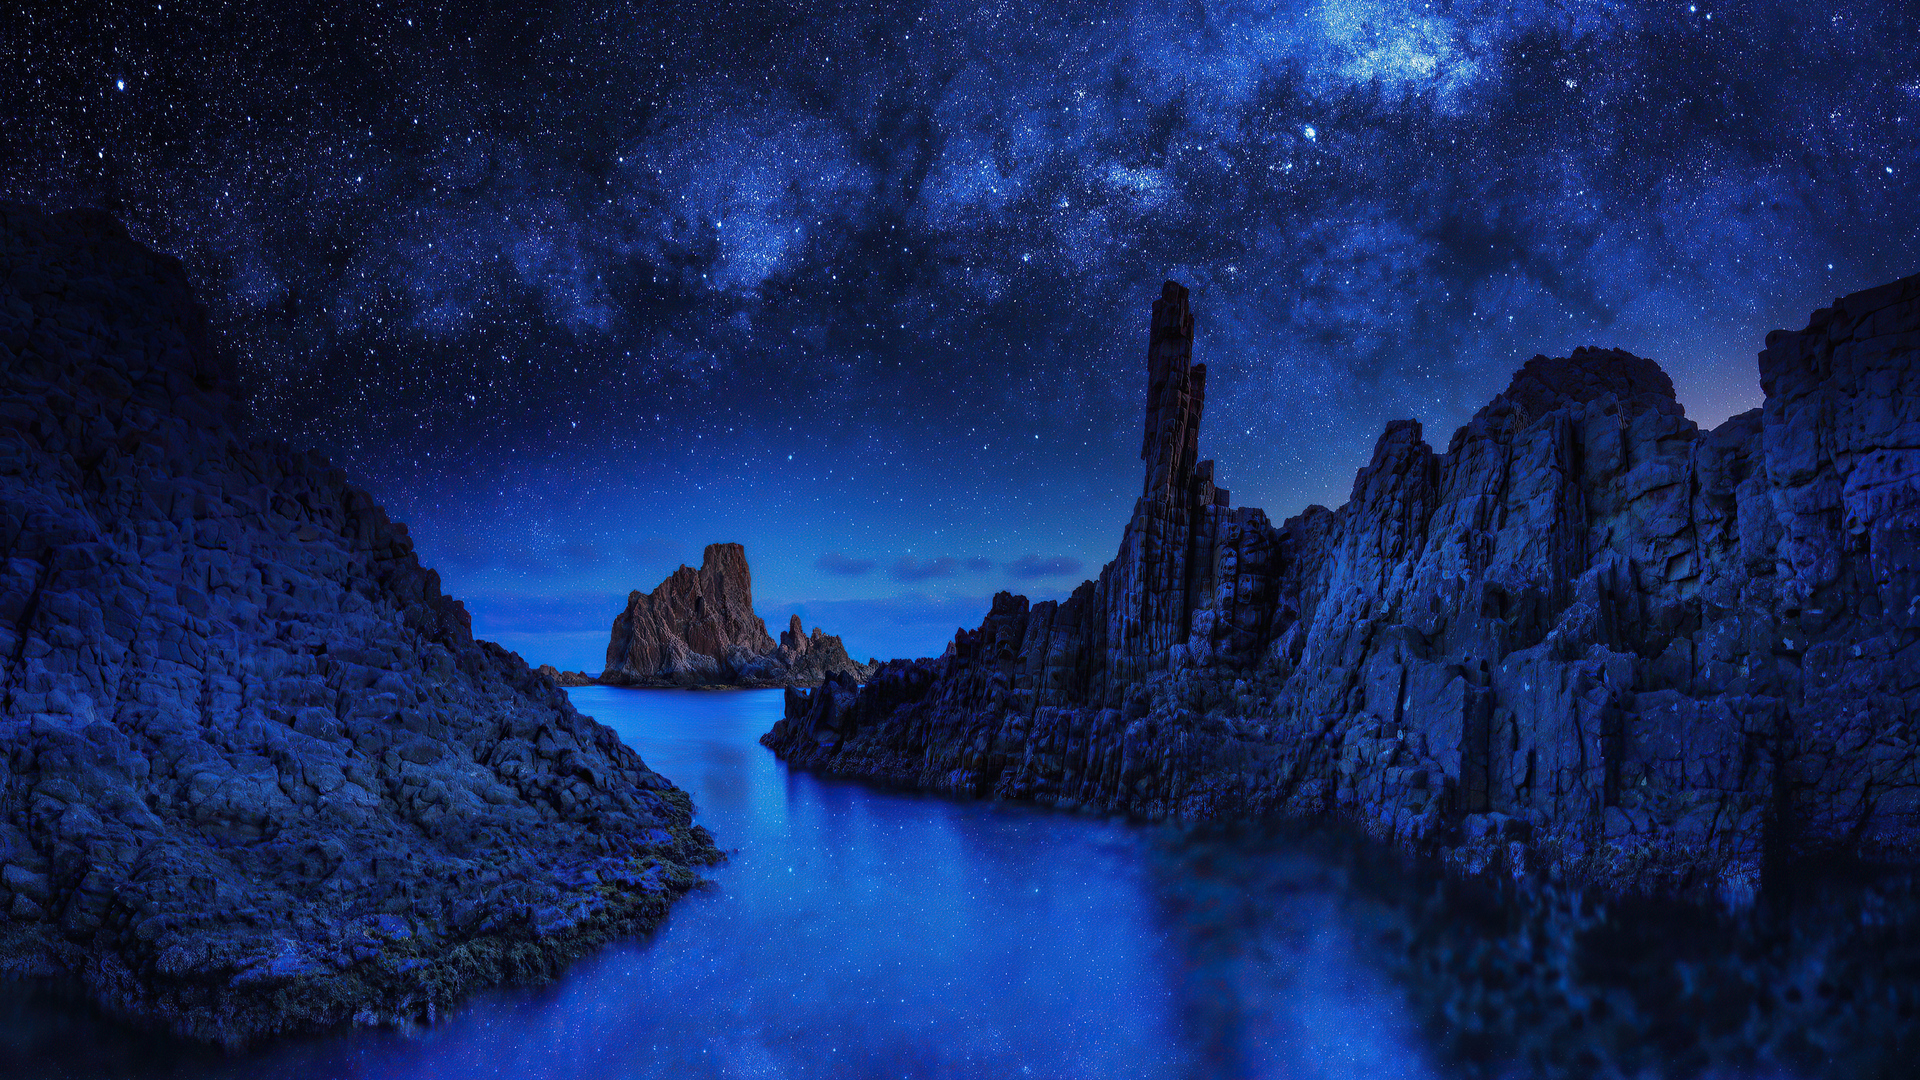 ocean-rocks-on-starry-night-4k-tk.jpg